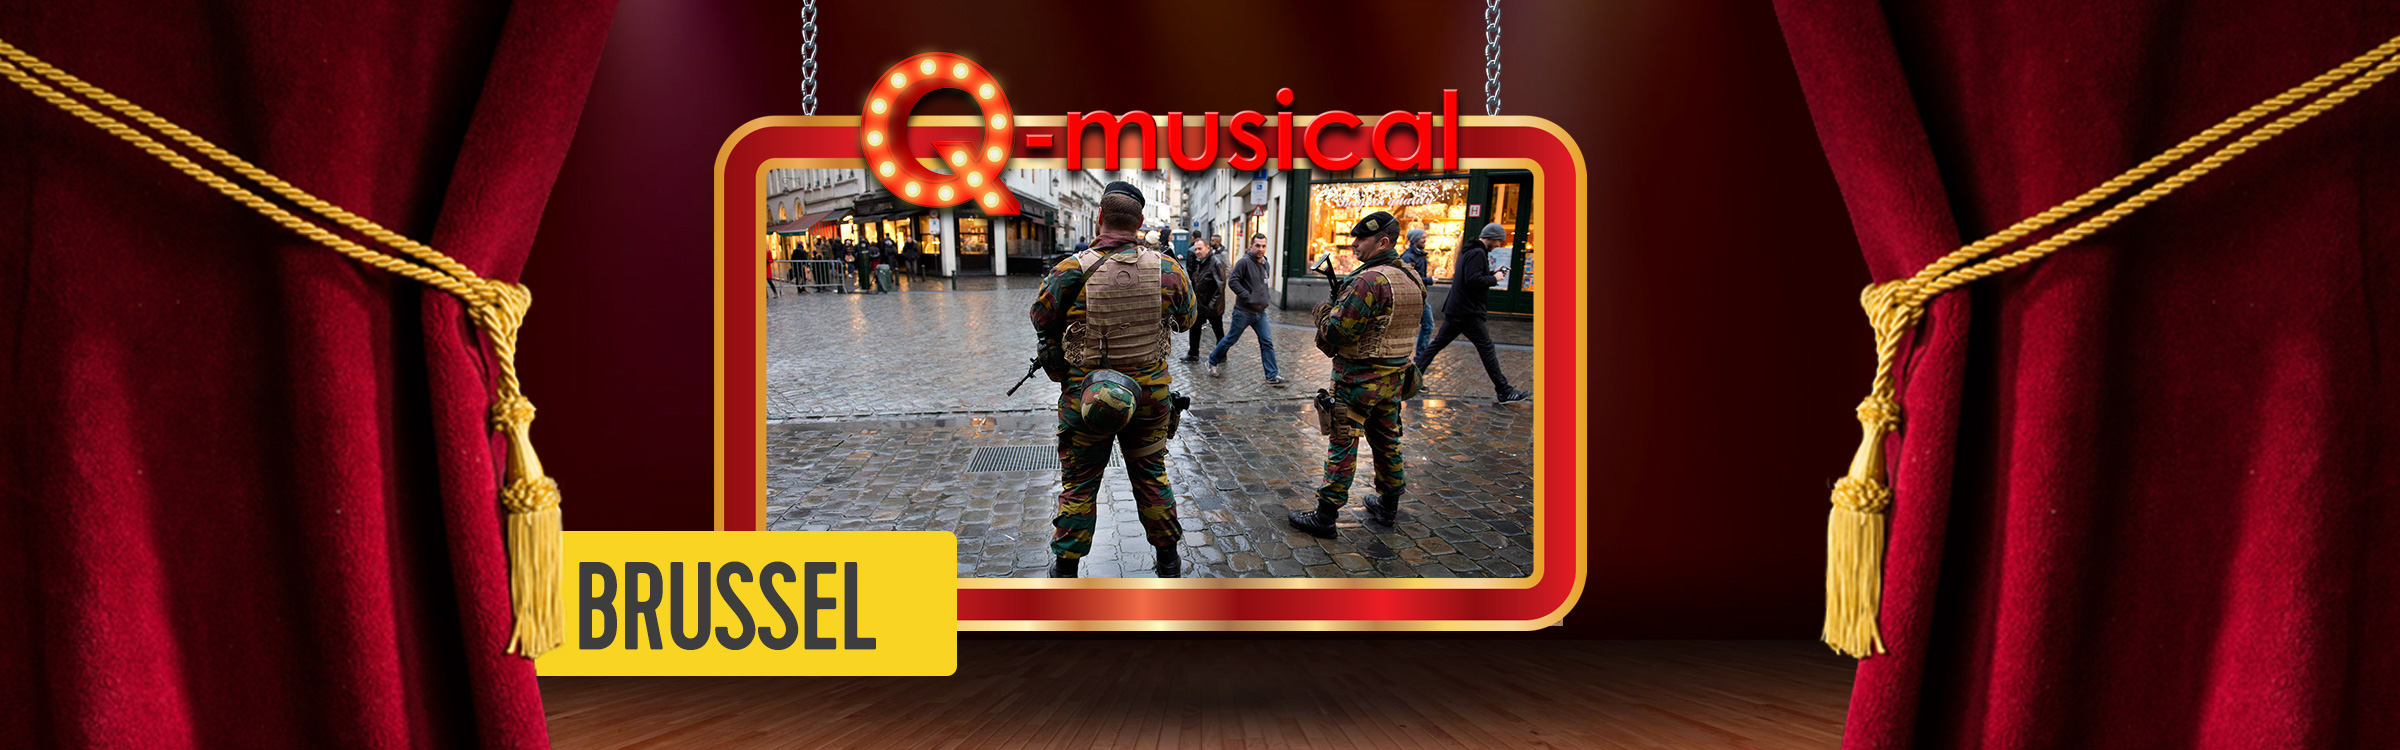 Q musical site header brussel